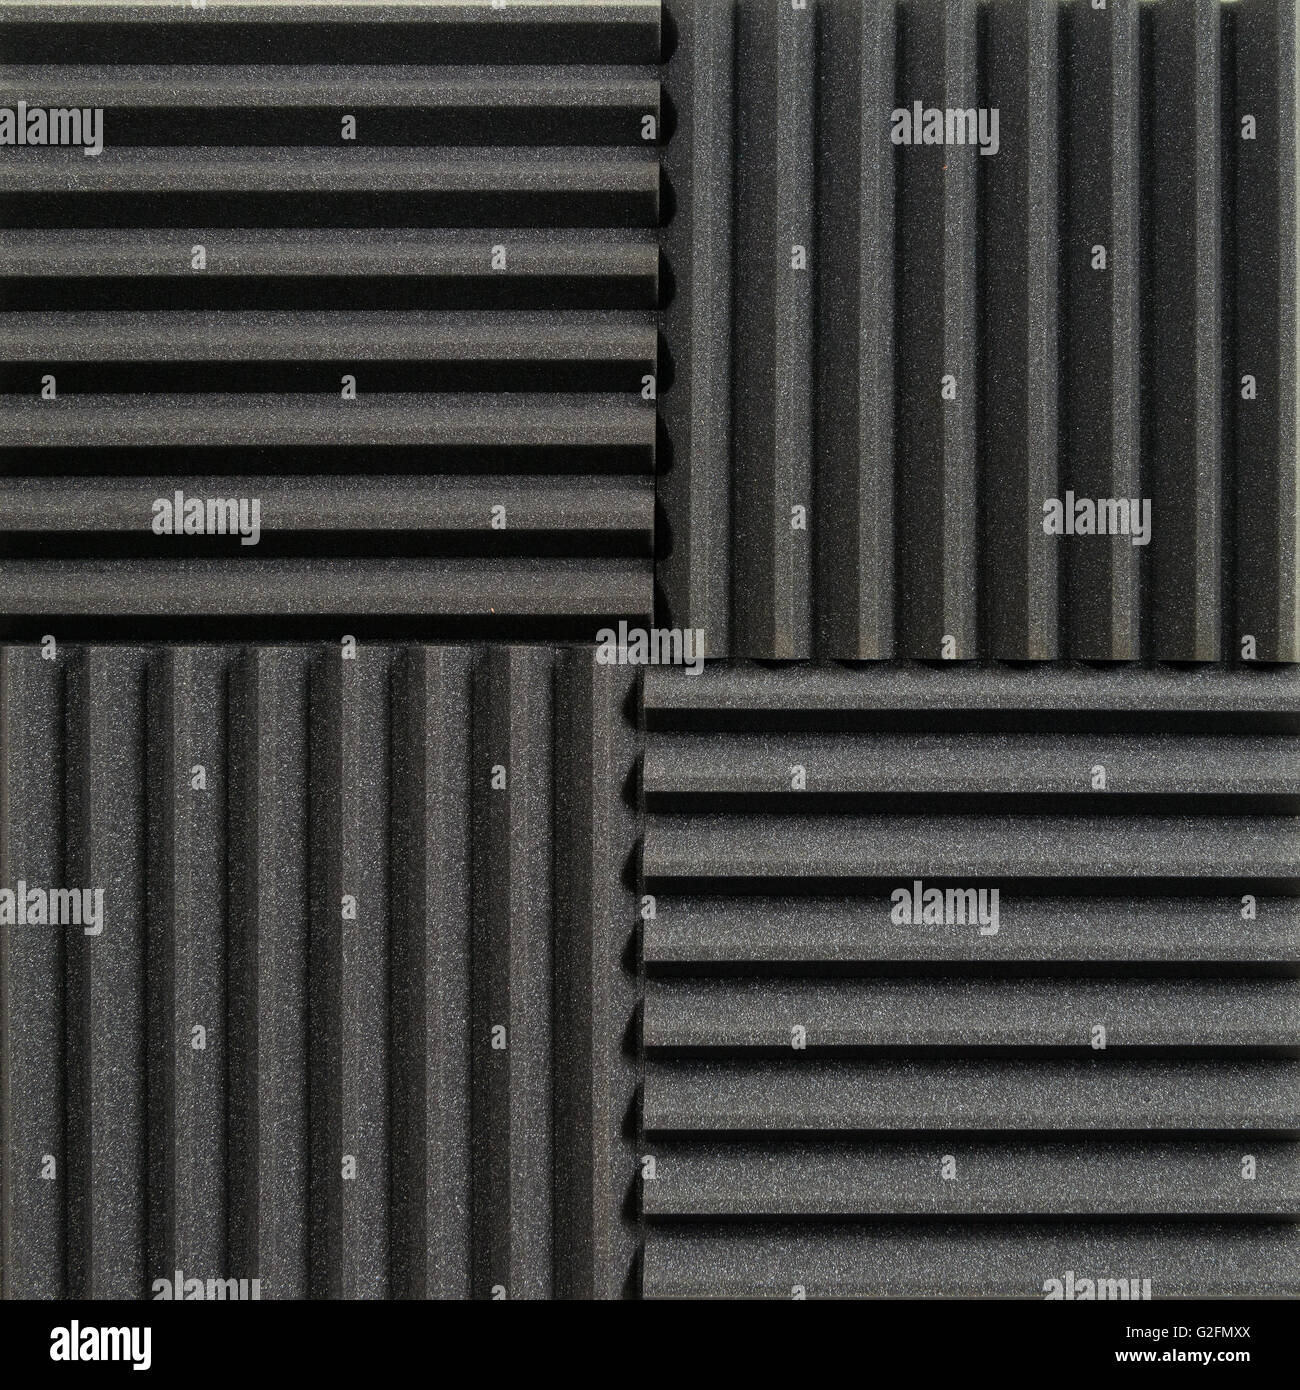 Background photo of recording studio sound dampening acoustical foam or tiles. Stock Photo